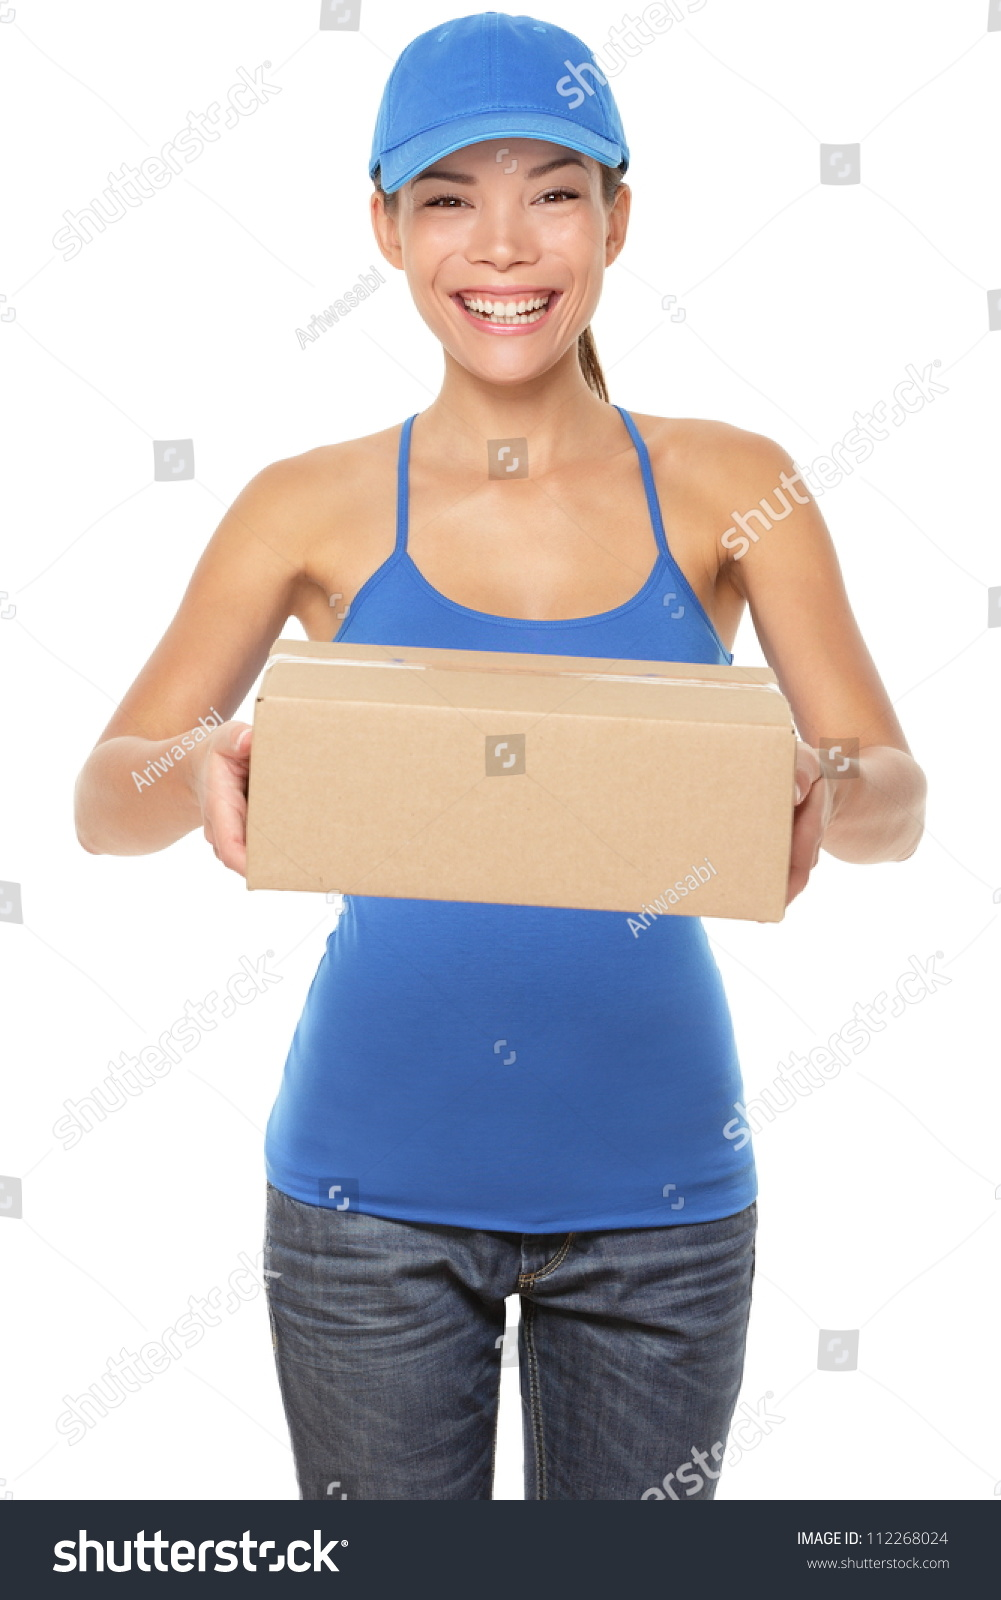 Female Package Delivery Person Giving Packages Stock Photo ...